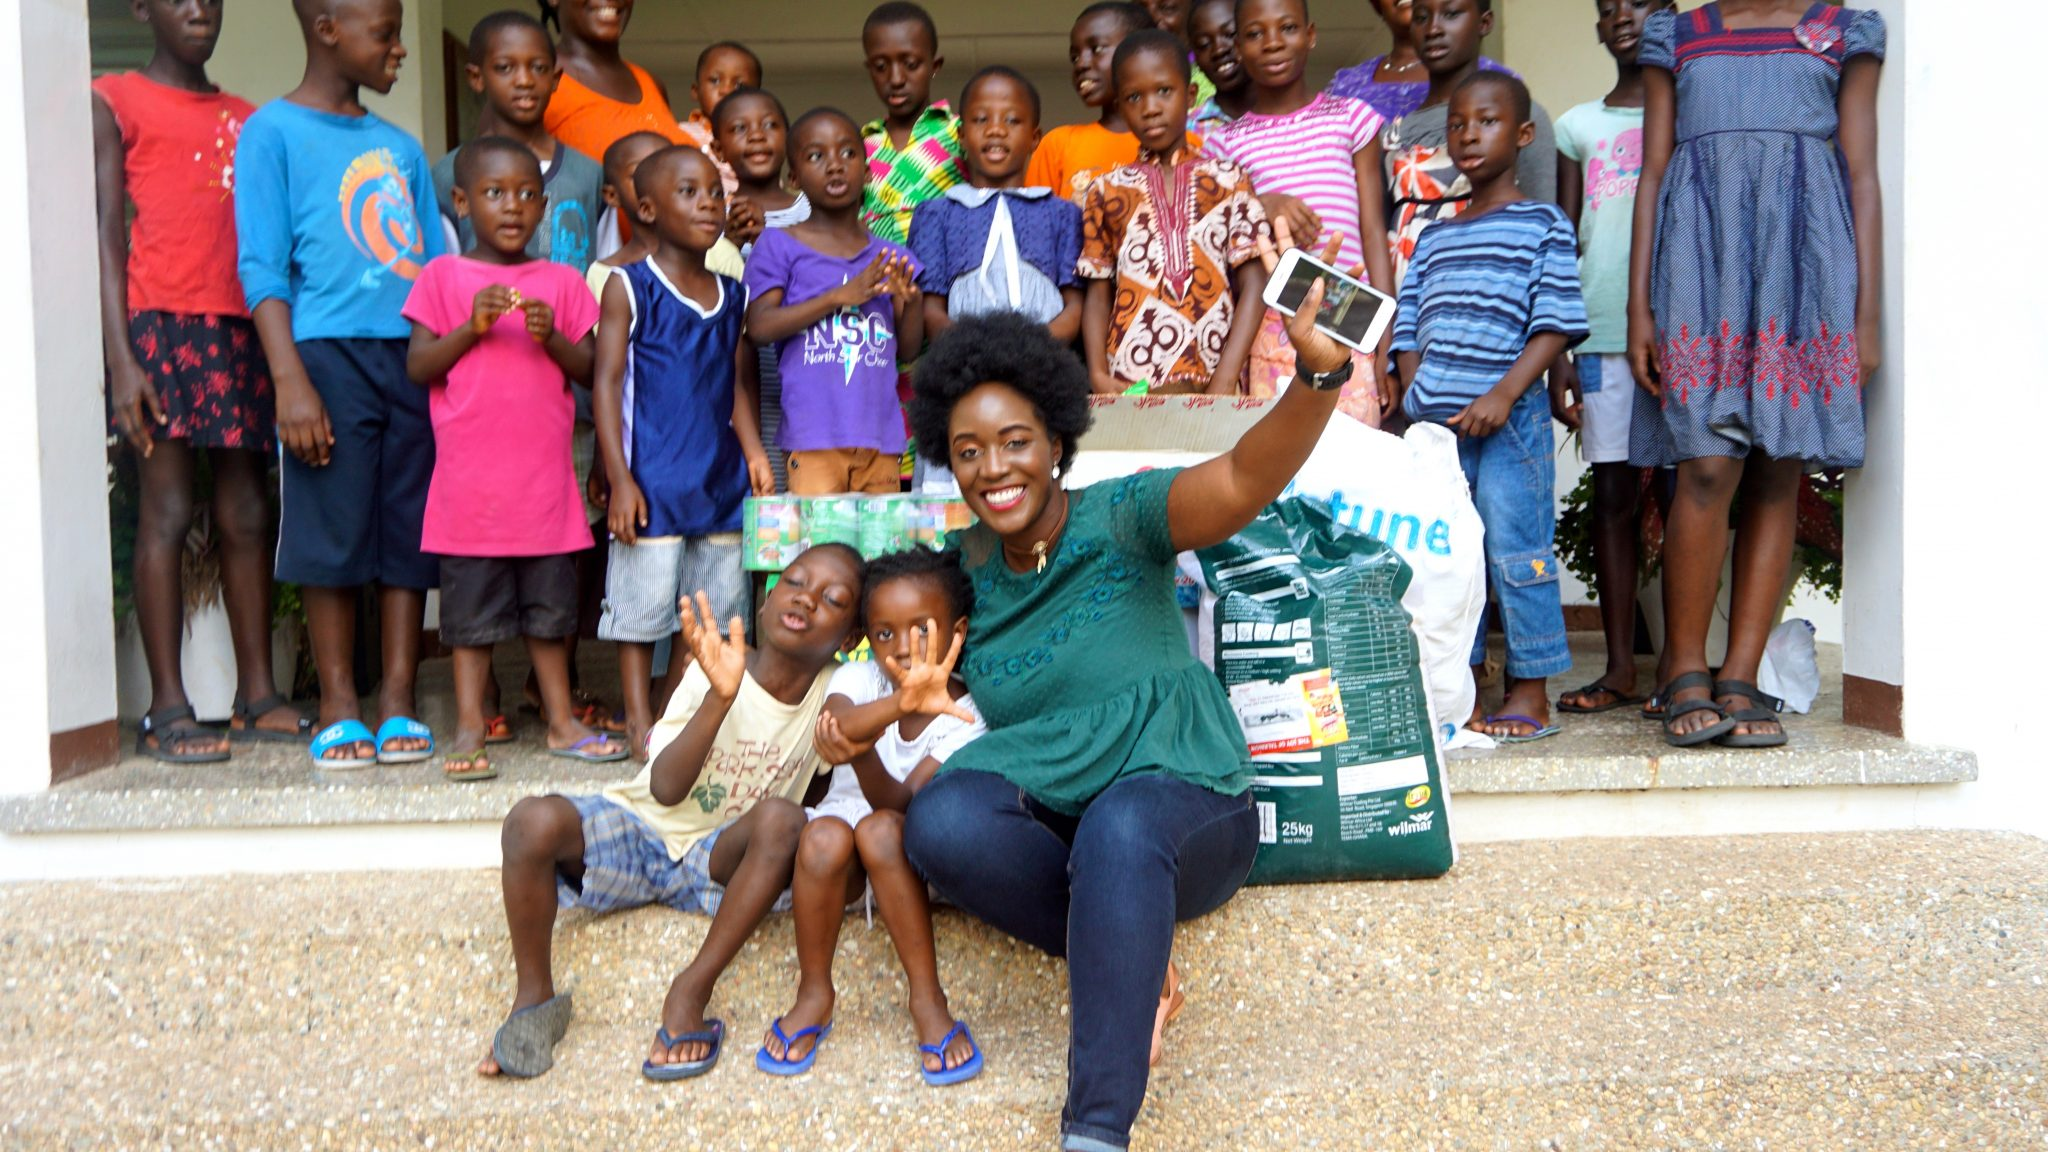 My Visit To The SOS Children's Villages in Ghana